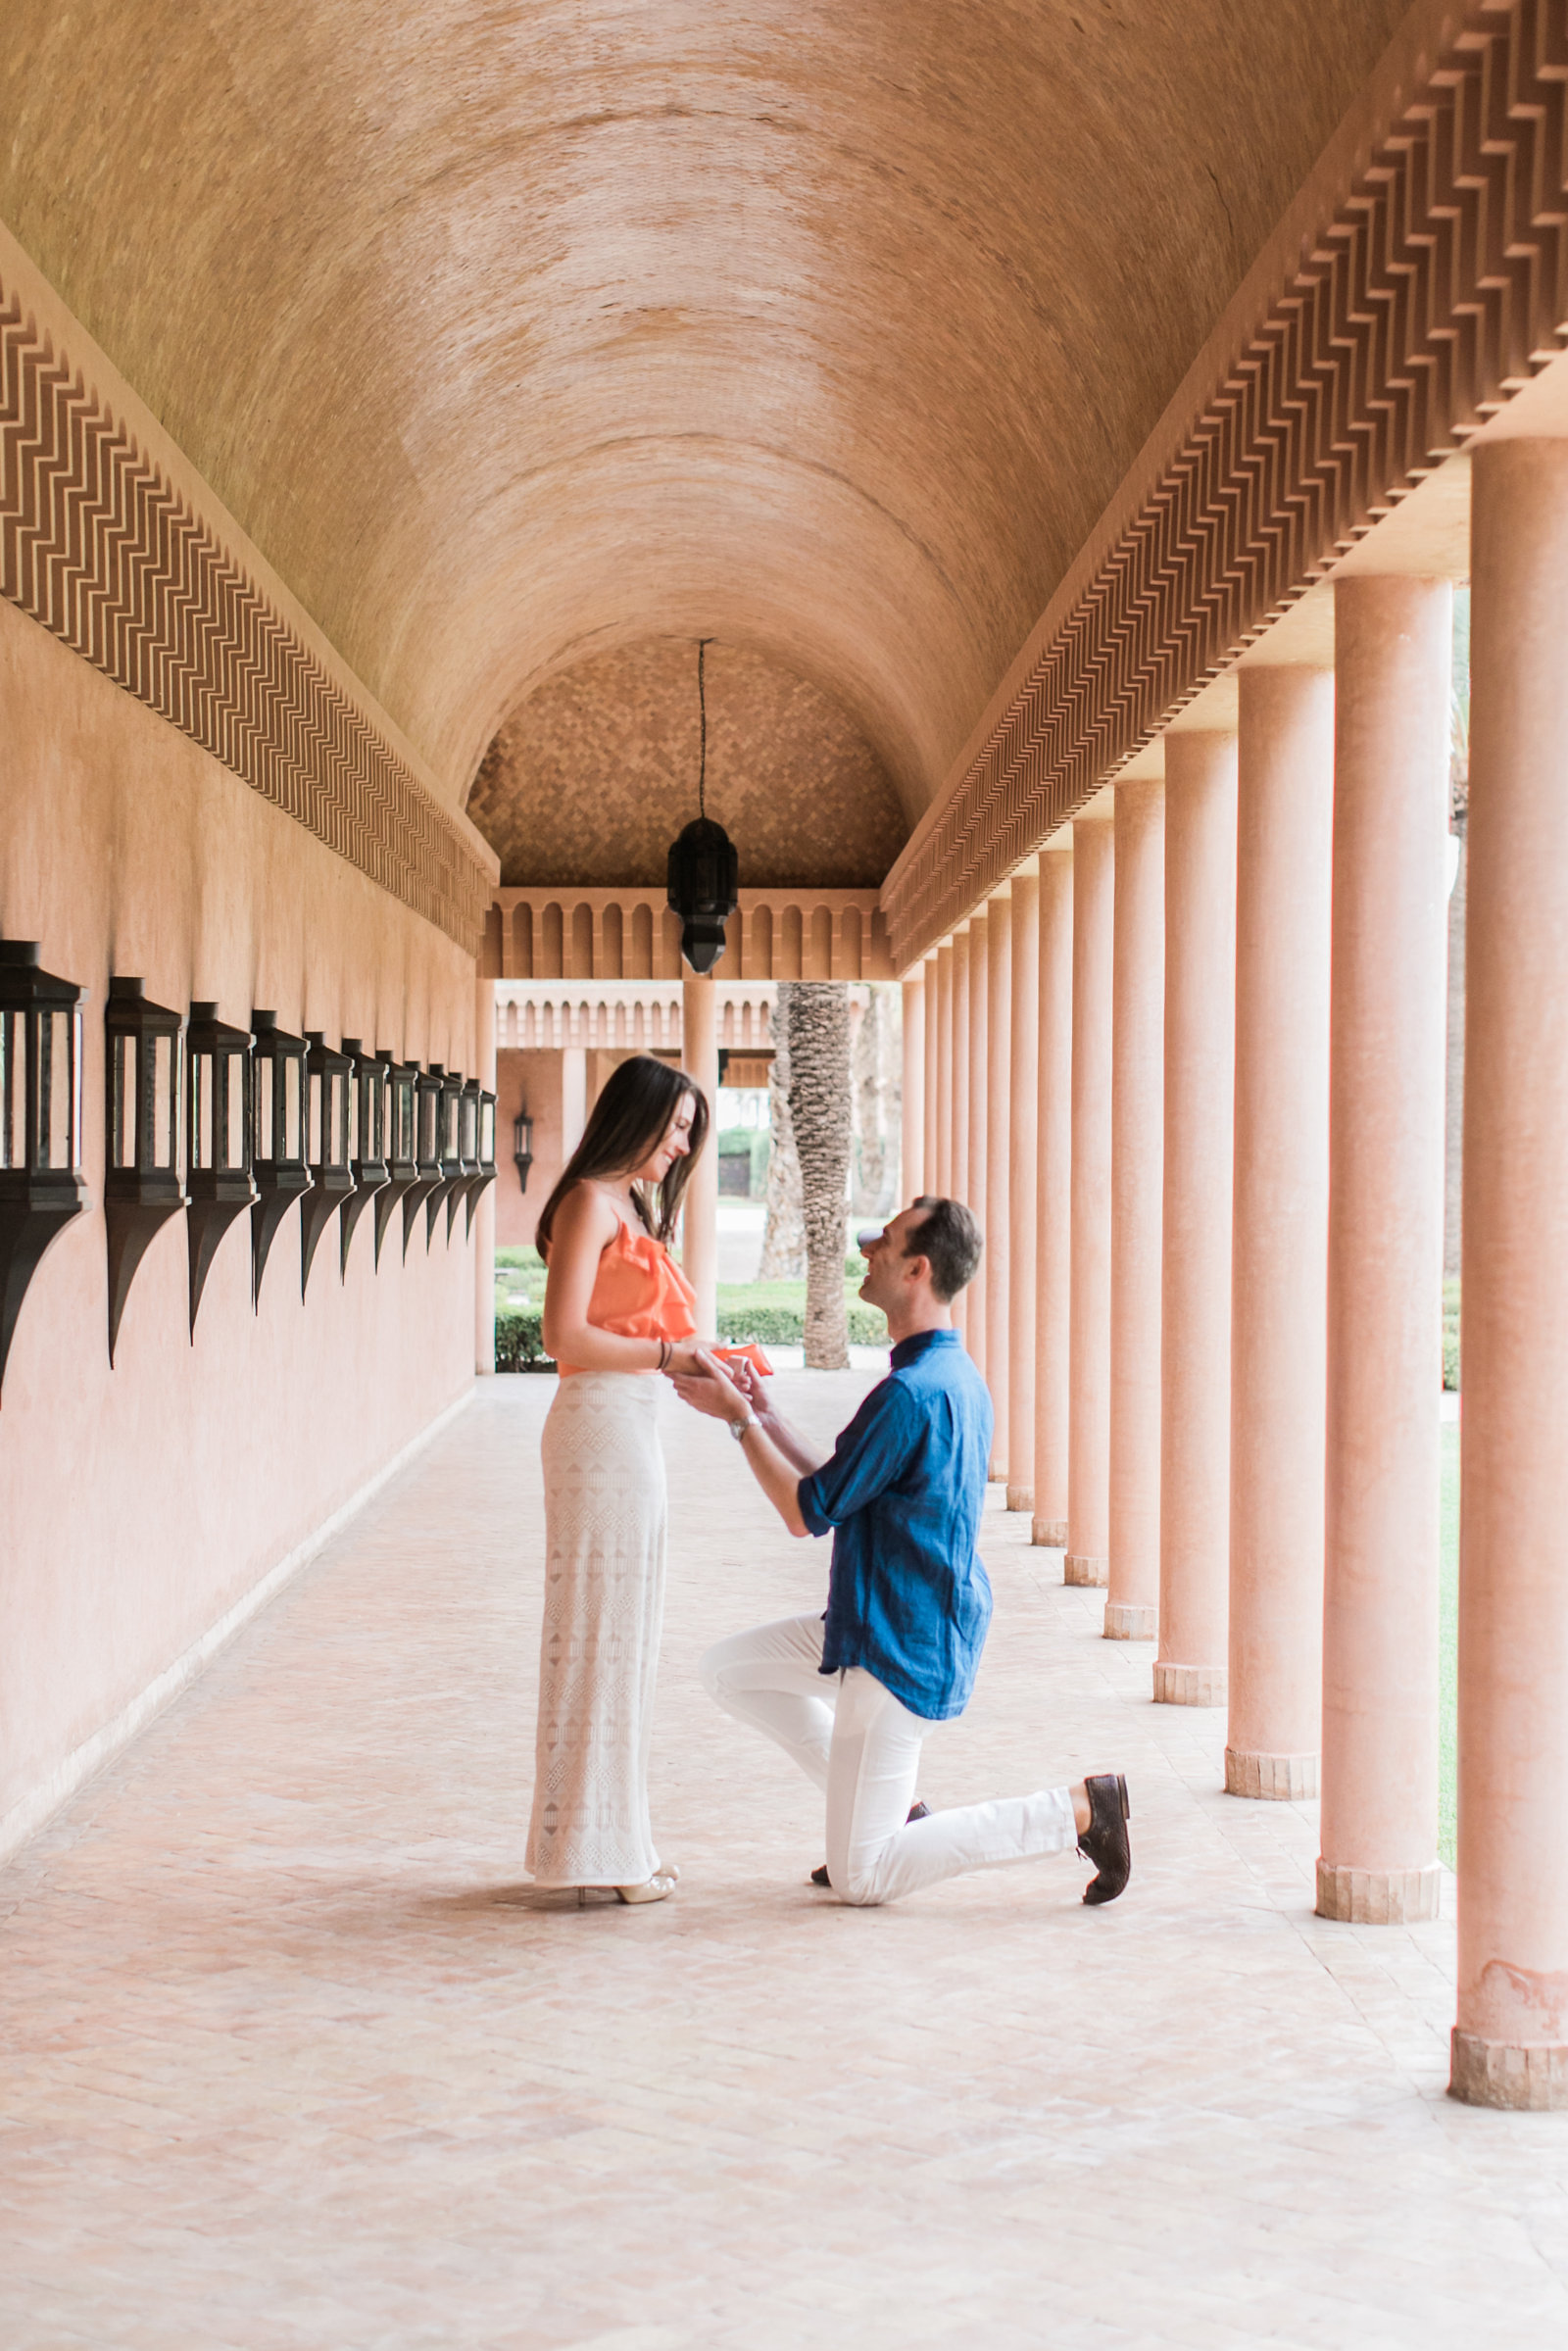 mariarao_engagement_marrakech-9web.JPG